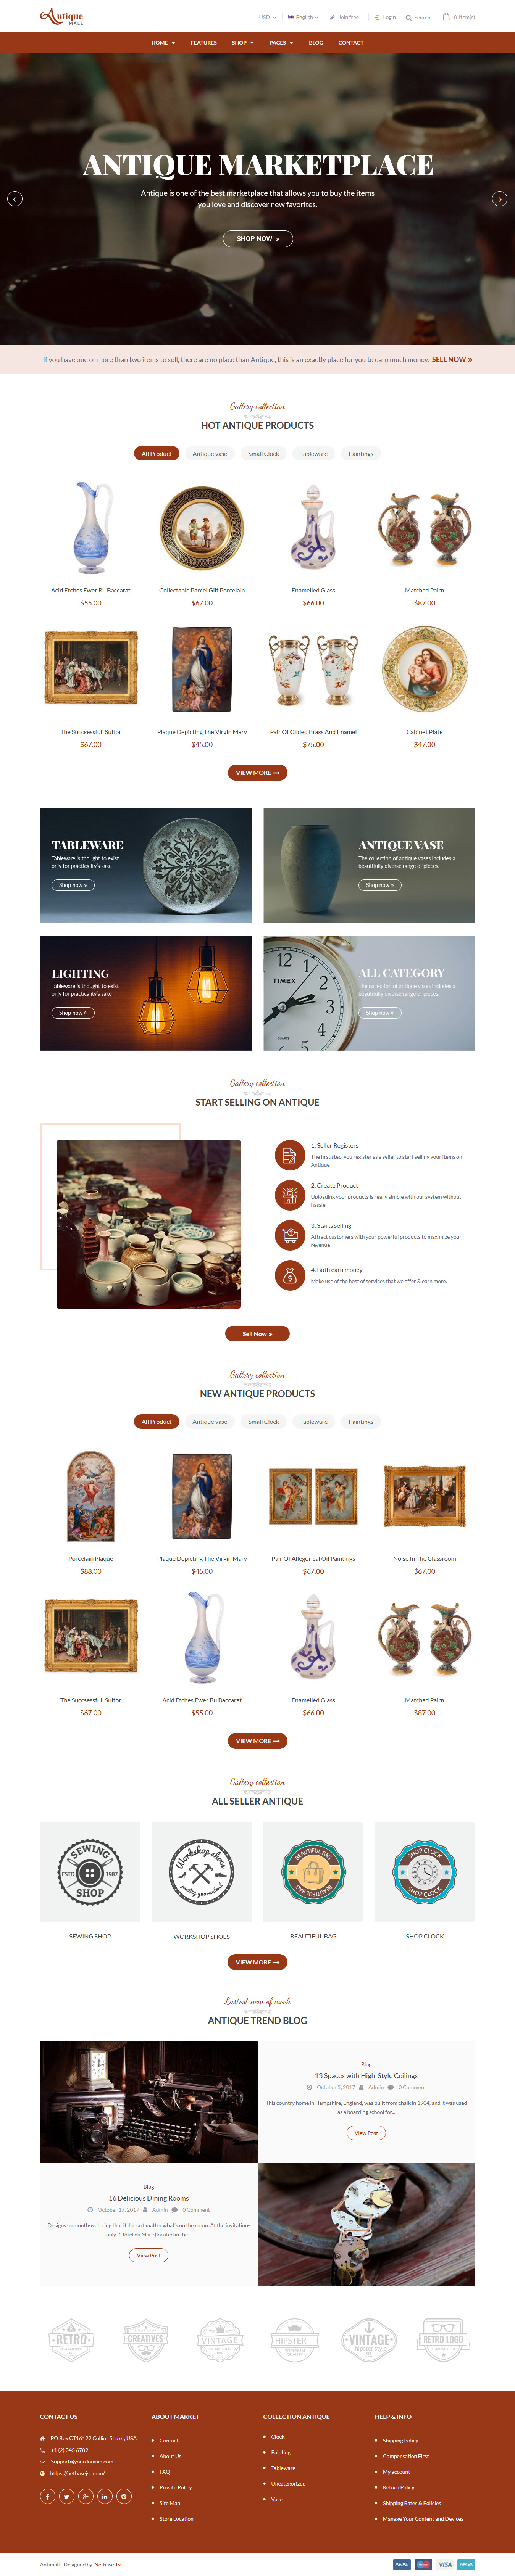 antiquemall best premium marketplace wordpress theme - 10+ Best Premium Marketplace WordPress Themes